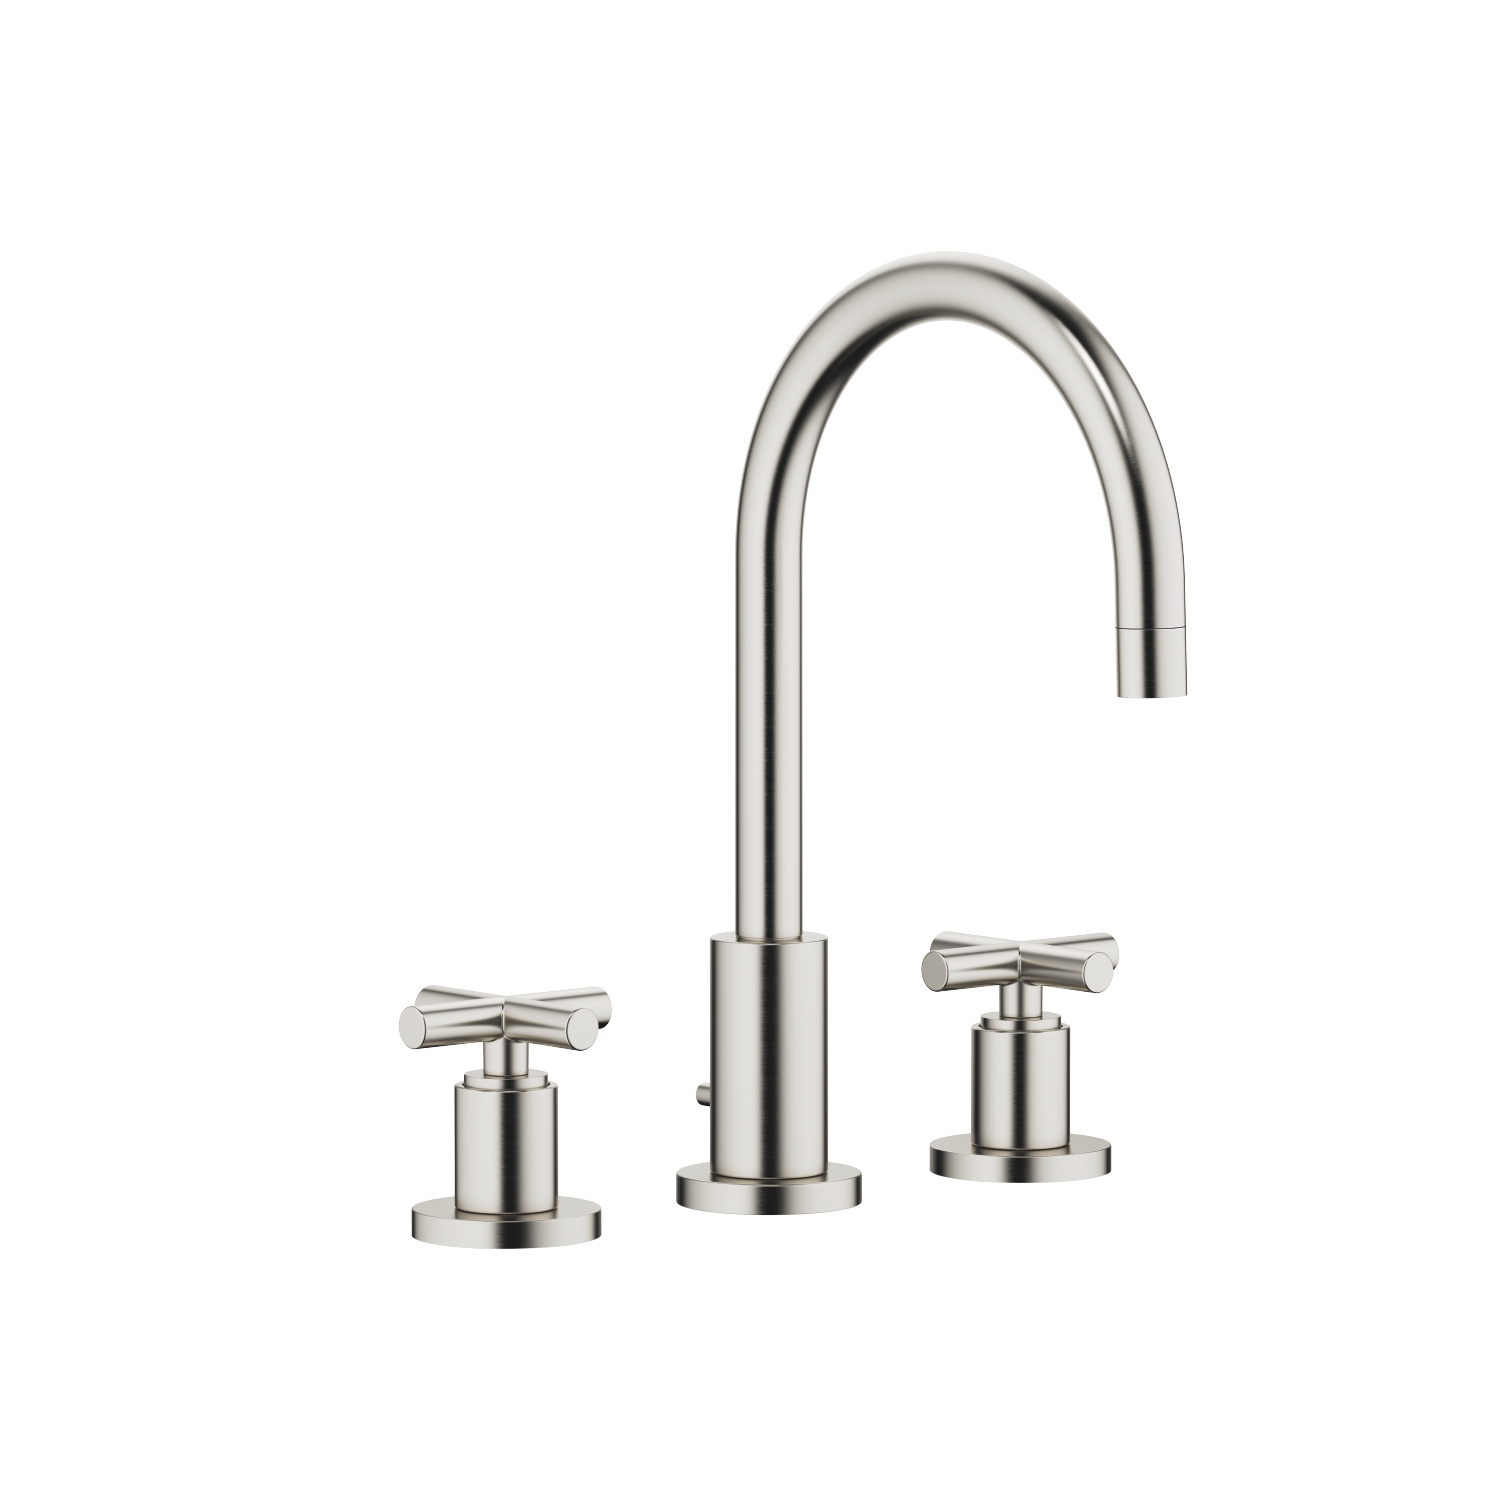 Three-hole basin mixer with pop-up waste - platinum matt - 20 713 892-06